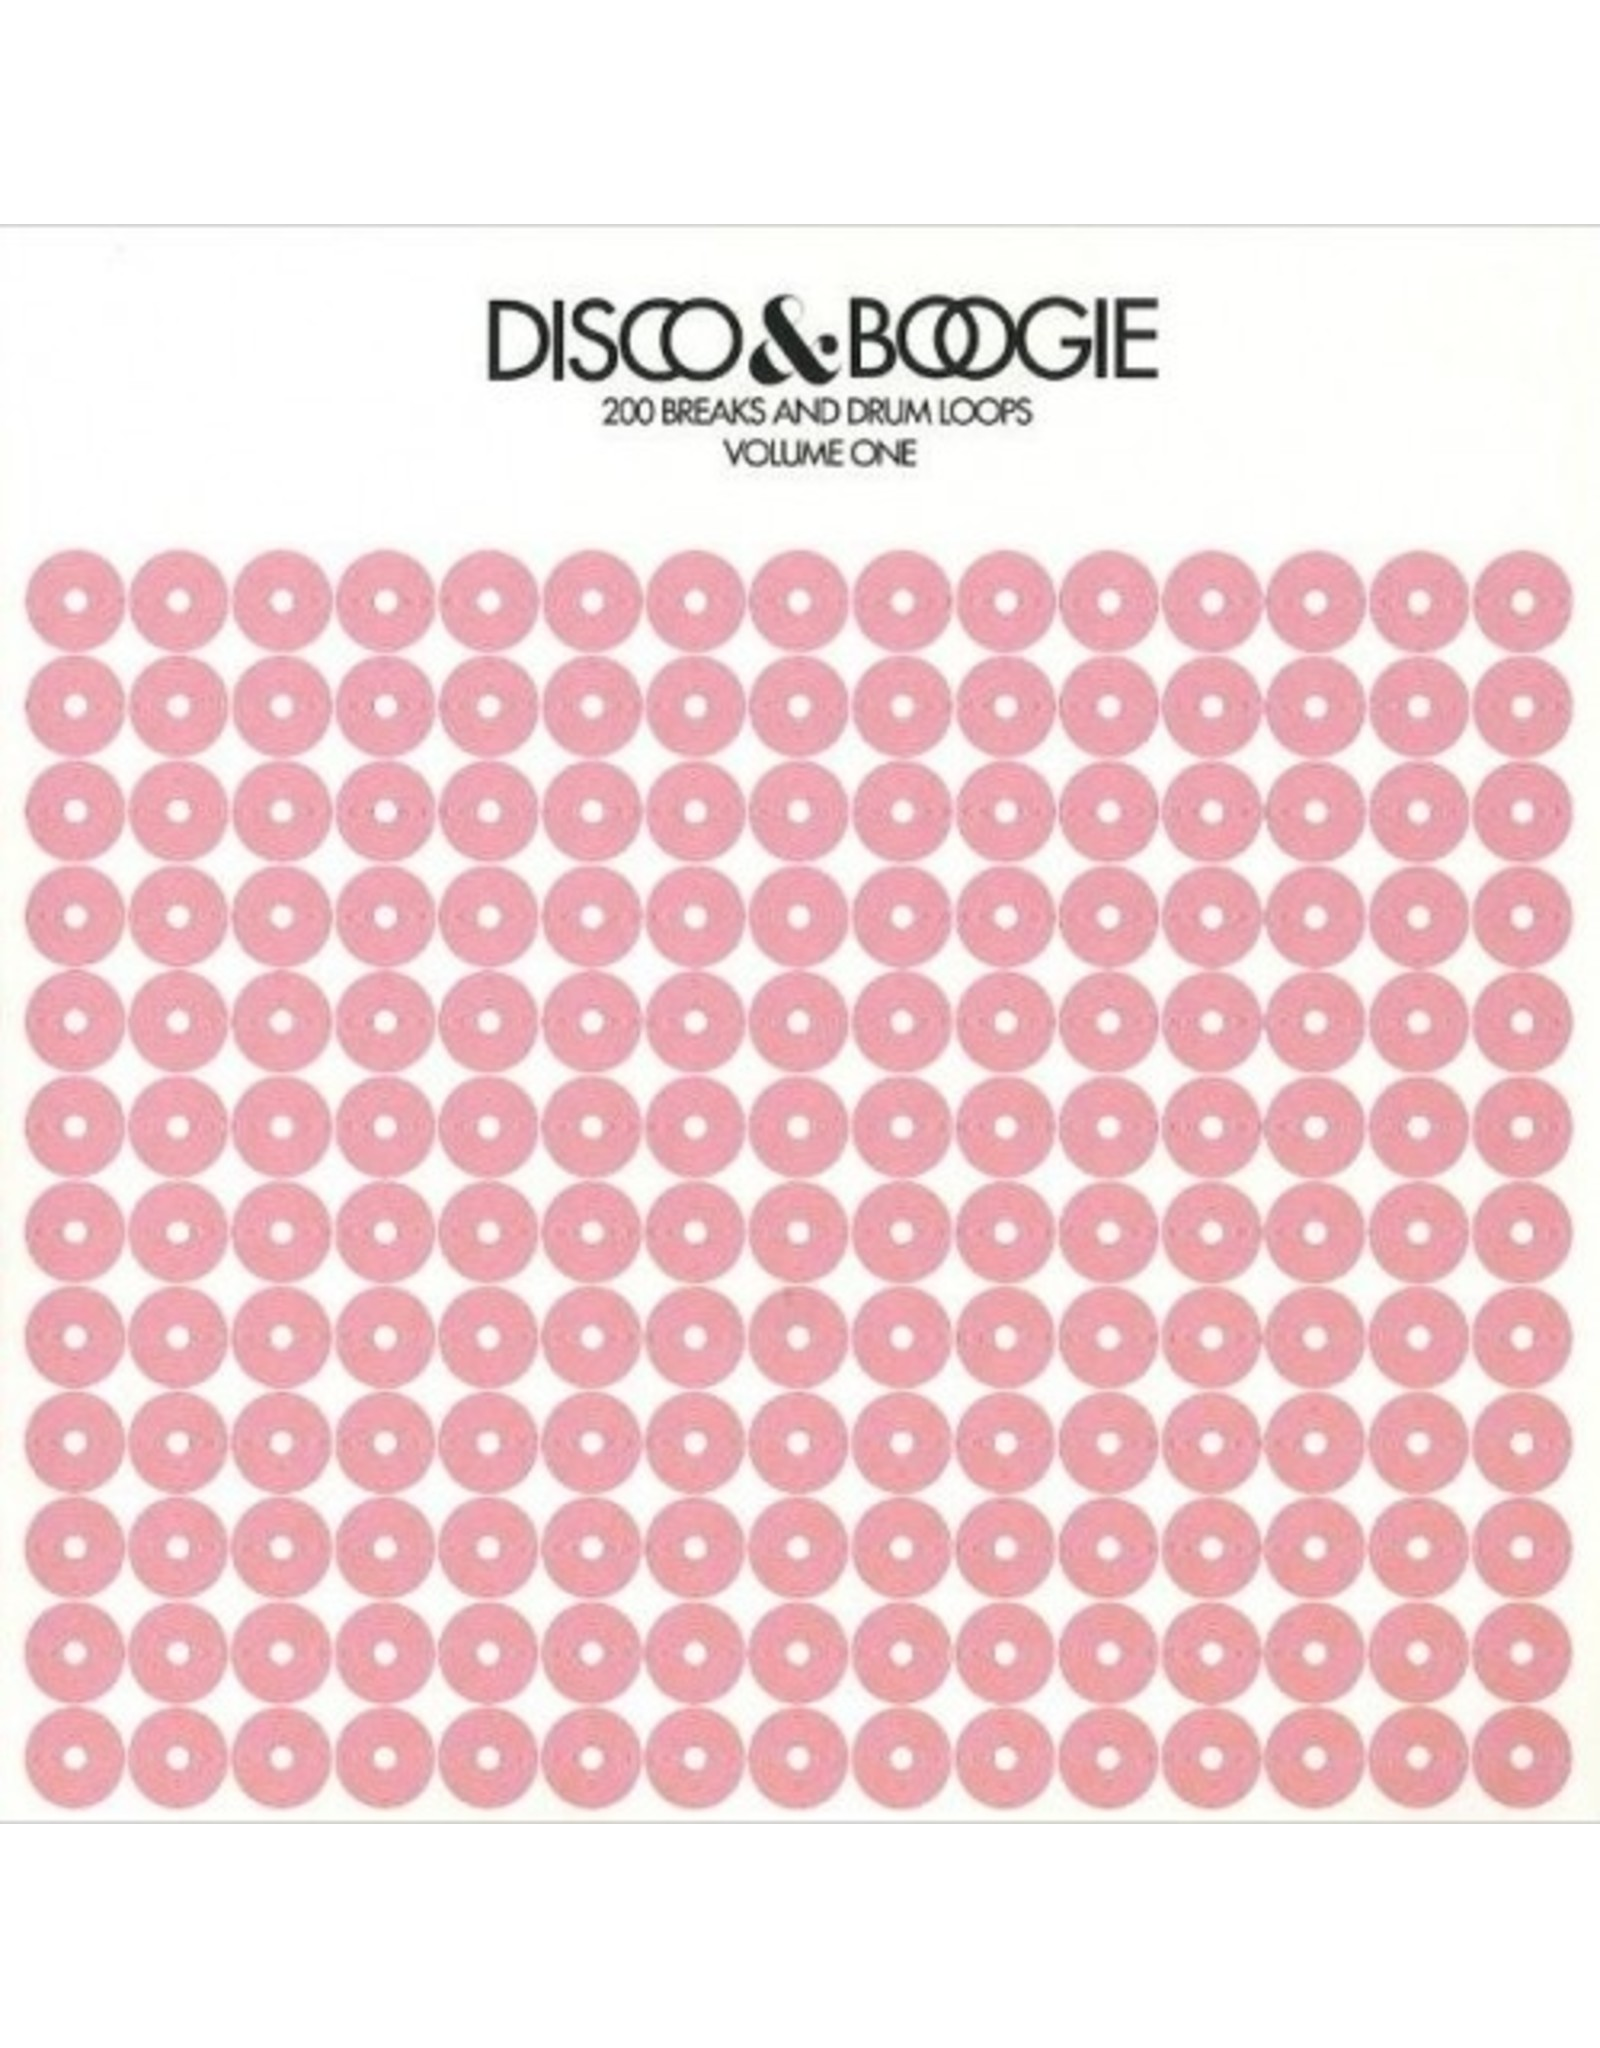 New Vinyl Disco & Boogie - 200 Breaks & Drum Loops Vol. 1 LP